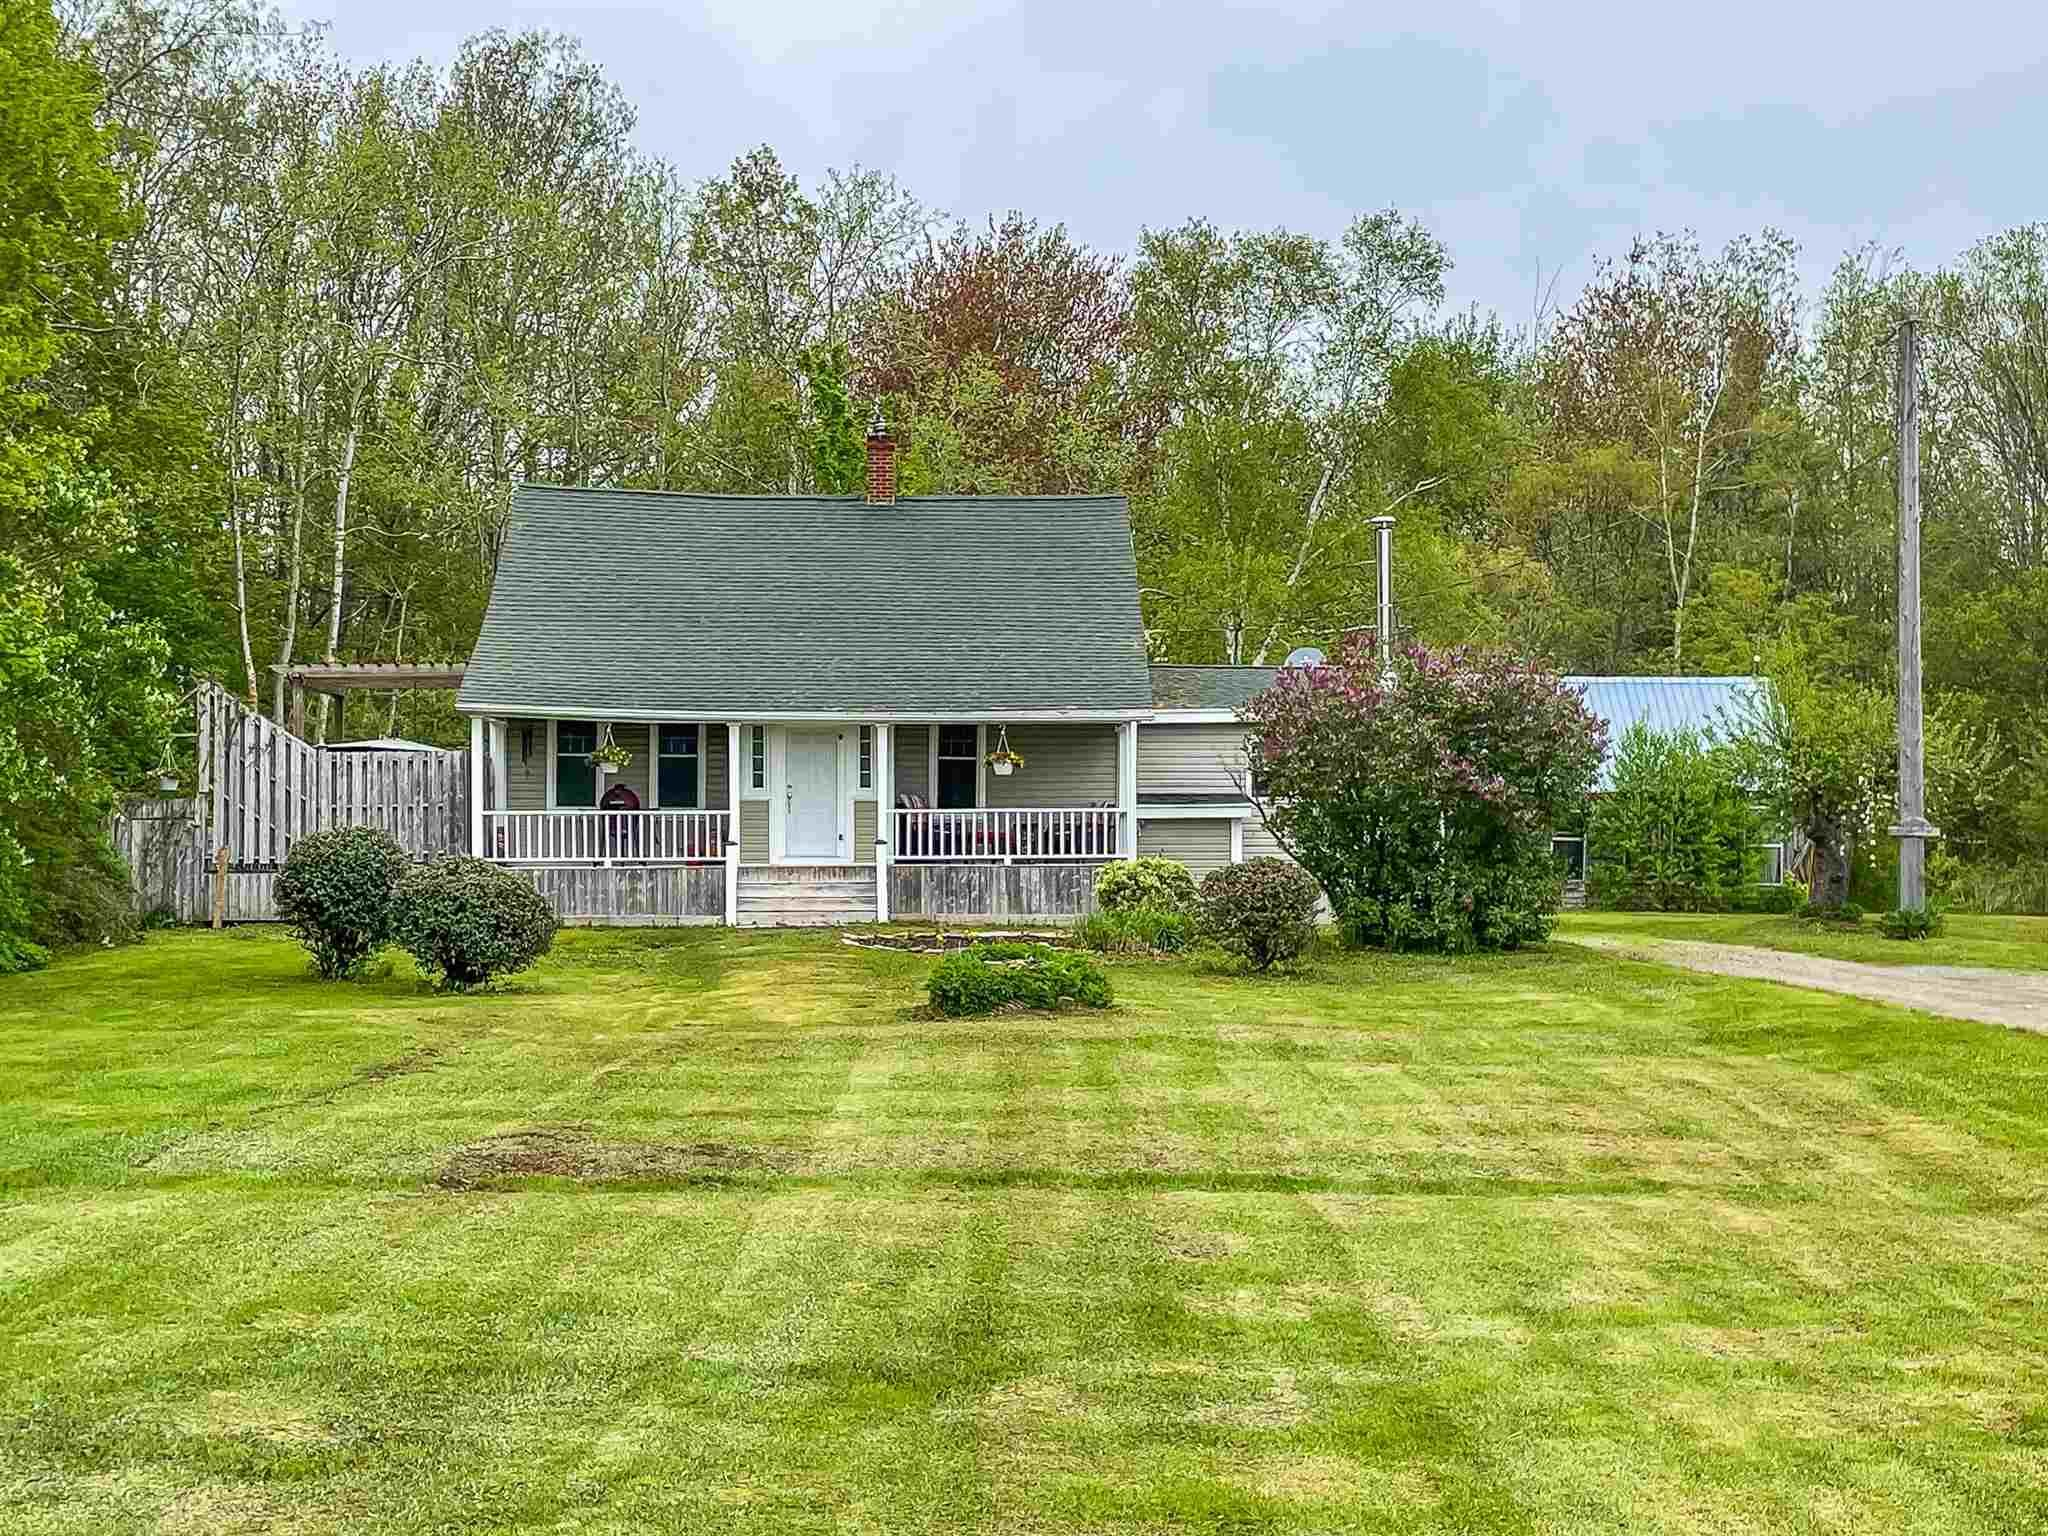 Main Photo: 59 Ratchford Road in Waterville: 404-Kings County Residential for sale (Annapolis Valley)  : MLS®# 202112439